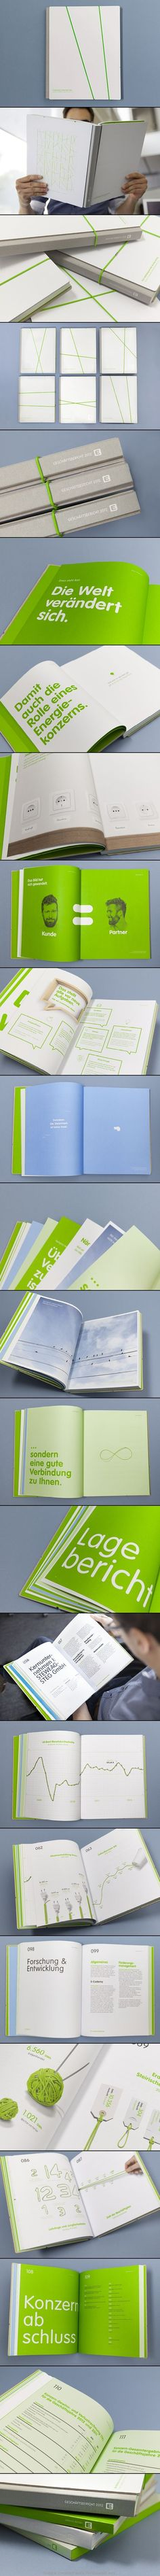 Good geometric strings for cover and nice finish! Steiermark Annual Report | by Moodley Brand Identity